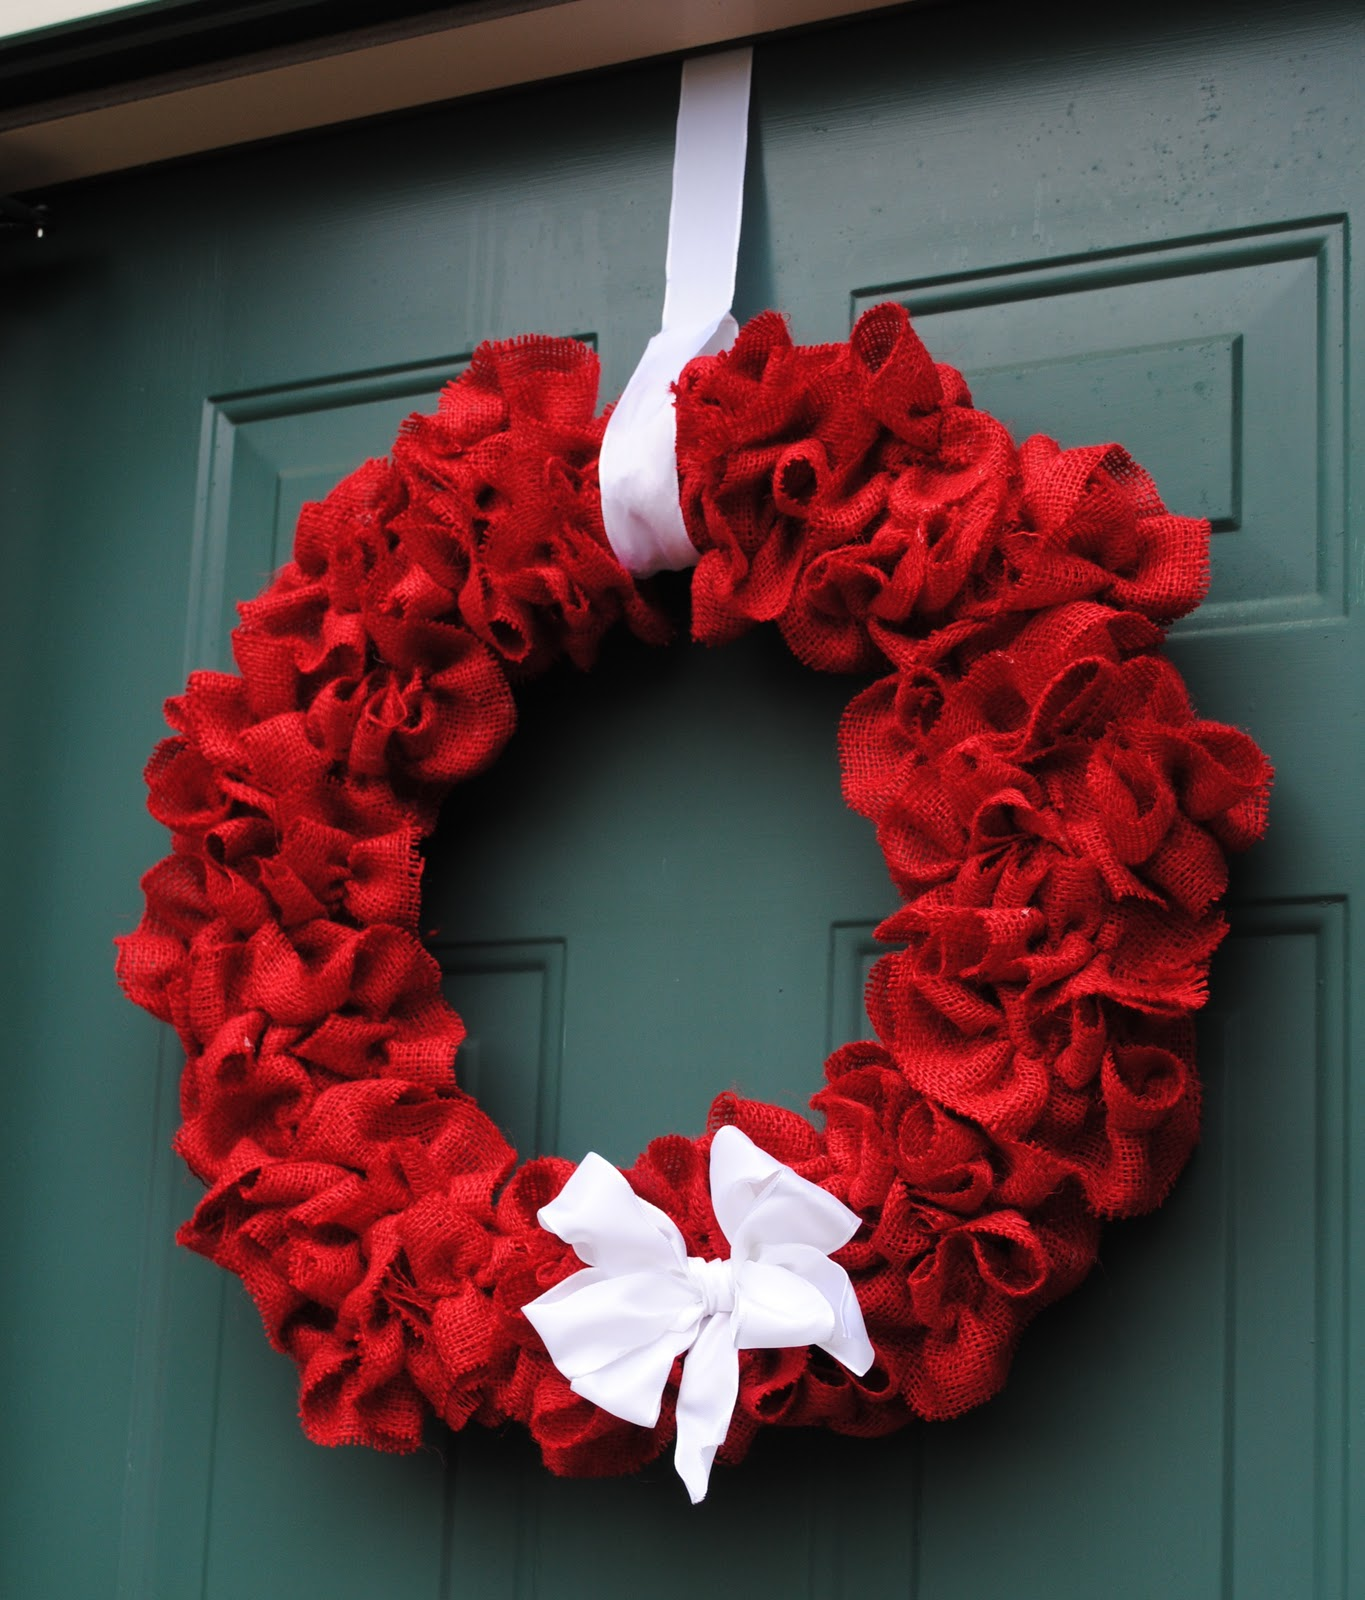 Decorating Wreaths: New South Design: Ruffled Burlap Wreath For $20